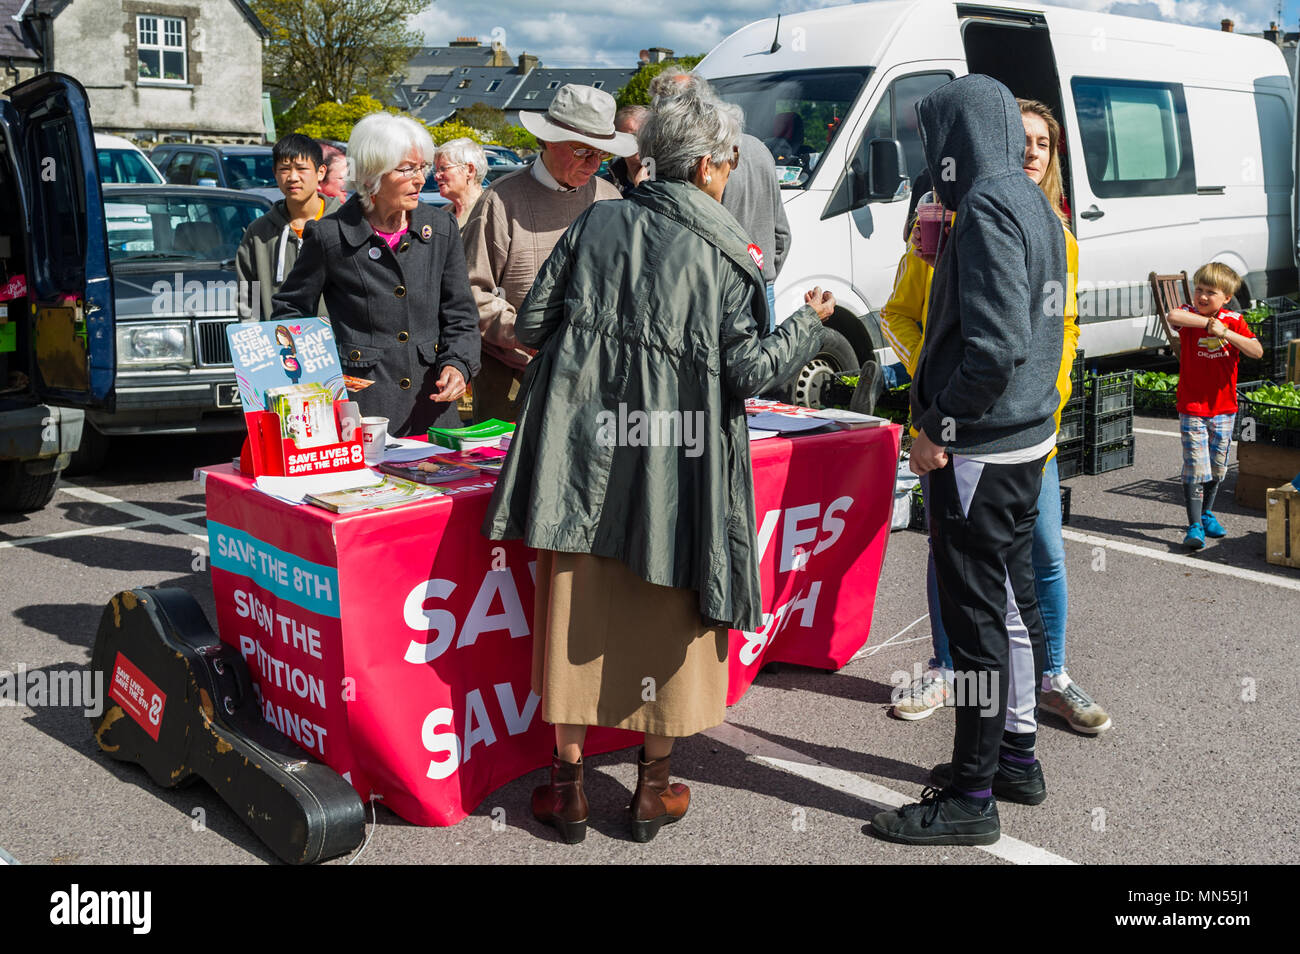 save-the-8thvote-no-table-for-the-upcoming-abortion-referendum-at-skibbereen-farmers-market-county-cork-ireland-MN55J1.jpg